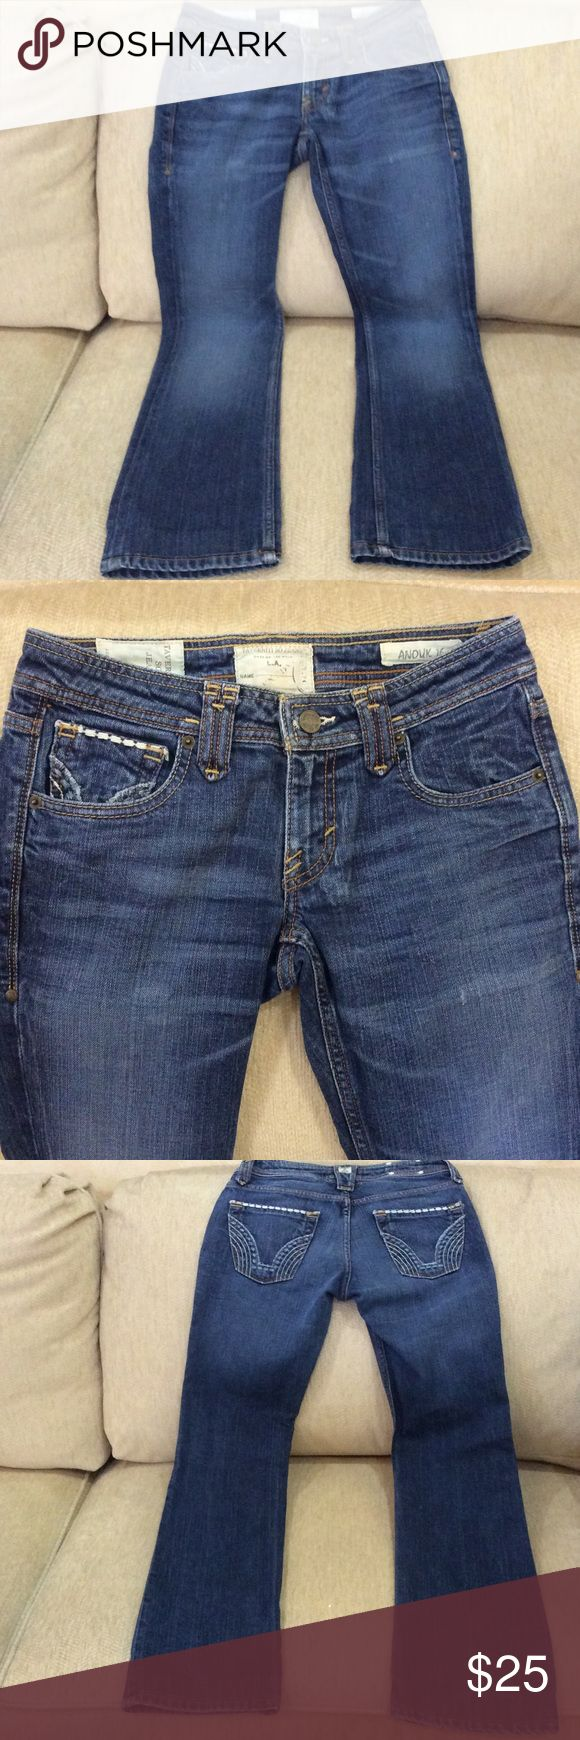 """Taverniti So Jeans Anouk 16 waist 27. Ladies Taverniti So Jeans Anouk 16 low rise Straight Leg size 27 inseam 31"""" inches. Leg opening flat 8""""inches. Rise 7""""inches . 91%cotton 8% polyester 1% Lycra. Distresssed and fading look. Stitching on back pockets and front change pocket. Zip and button closure. Have been worn. Taverniti so jeans  Jeans Straight Leg"""